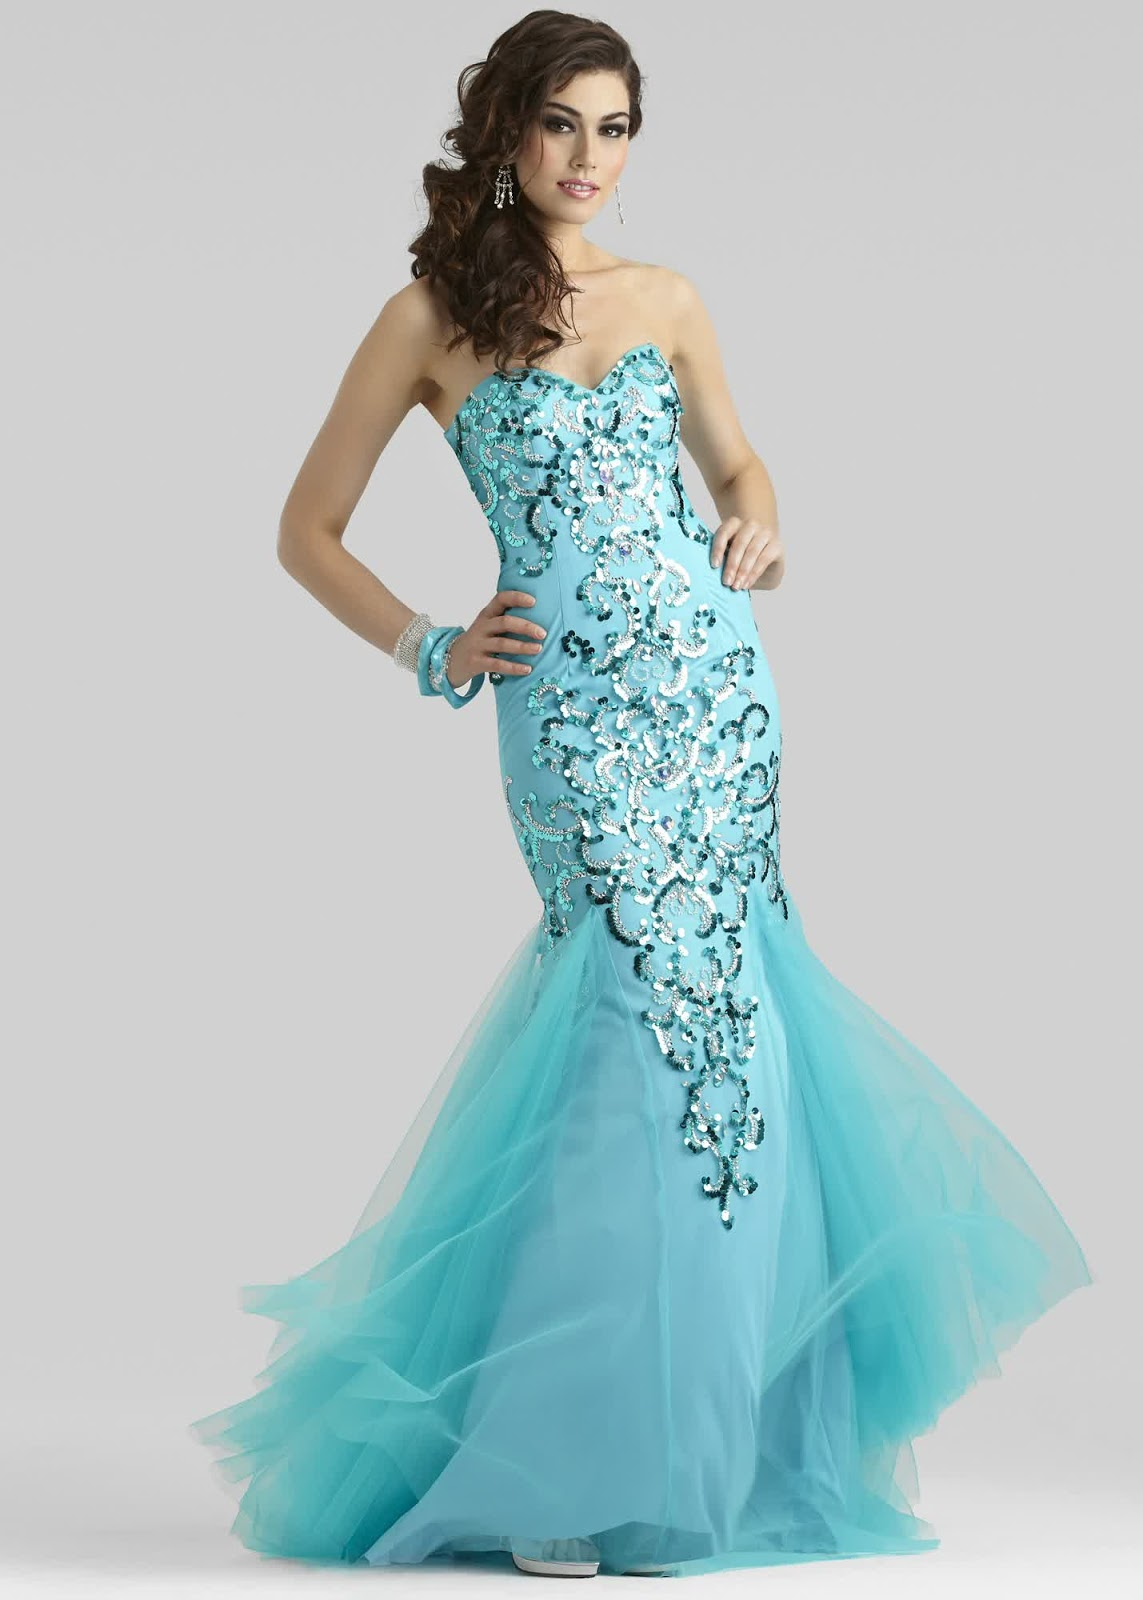 Latest Blue For Mermaid Prom Dresses 2016 | bridal and wedding trend